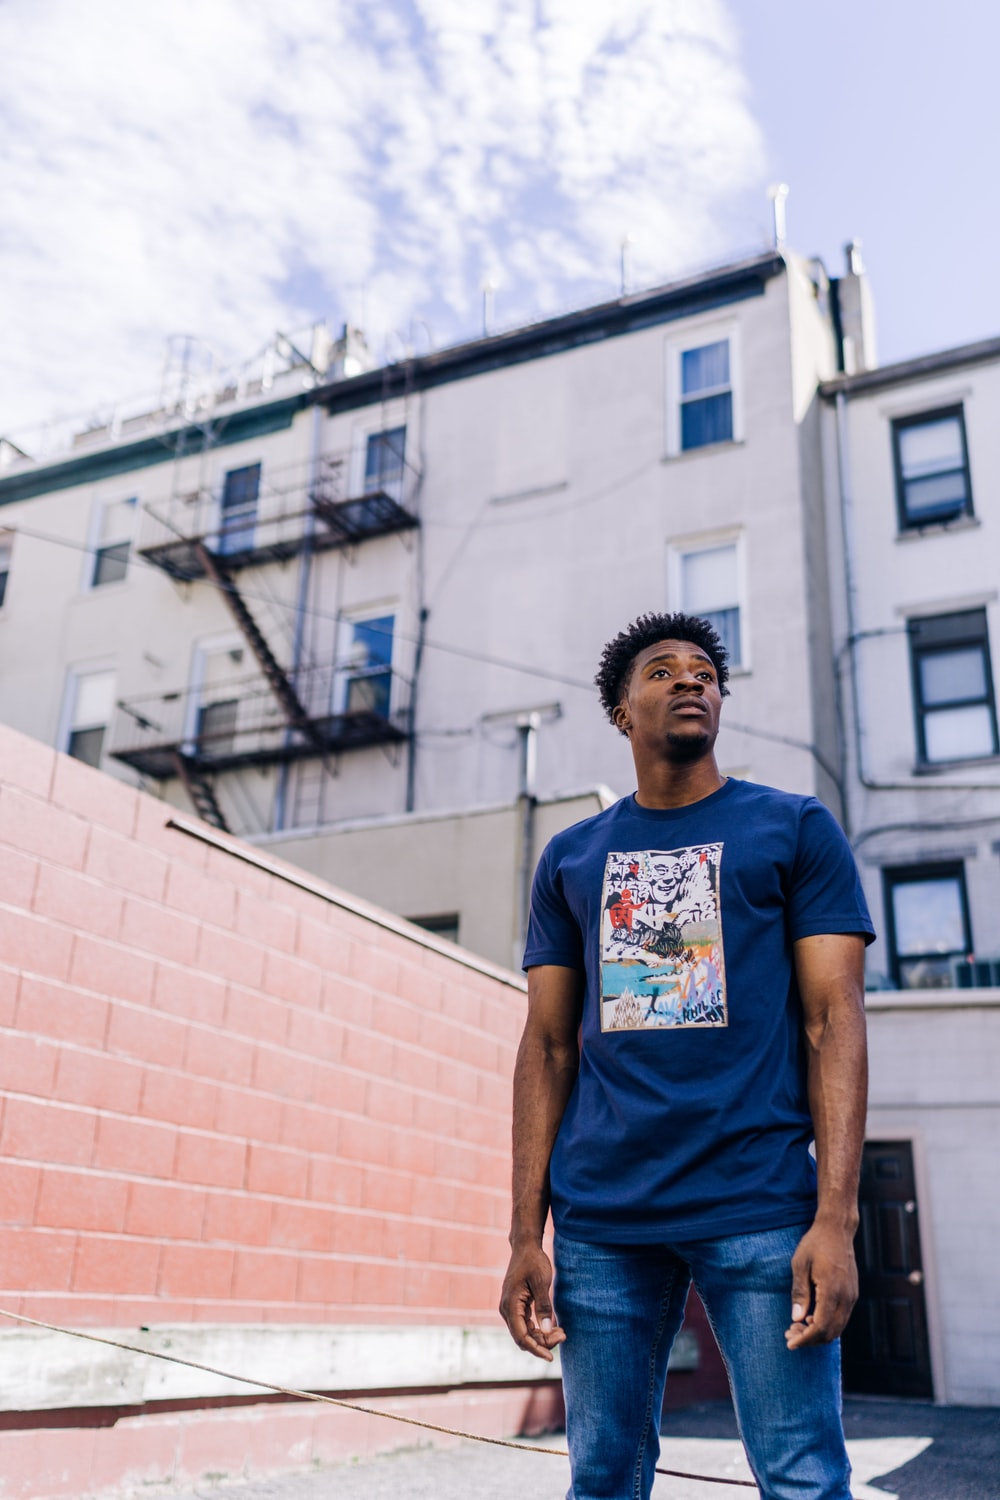 man in blue crew neck t-shirt standing near brown concrete building during daytime